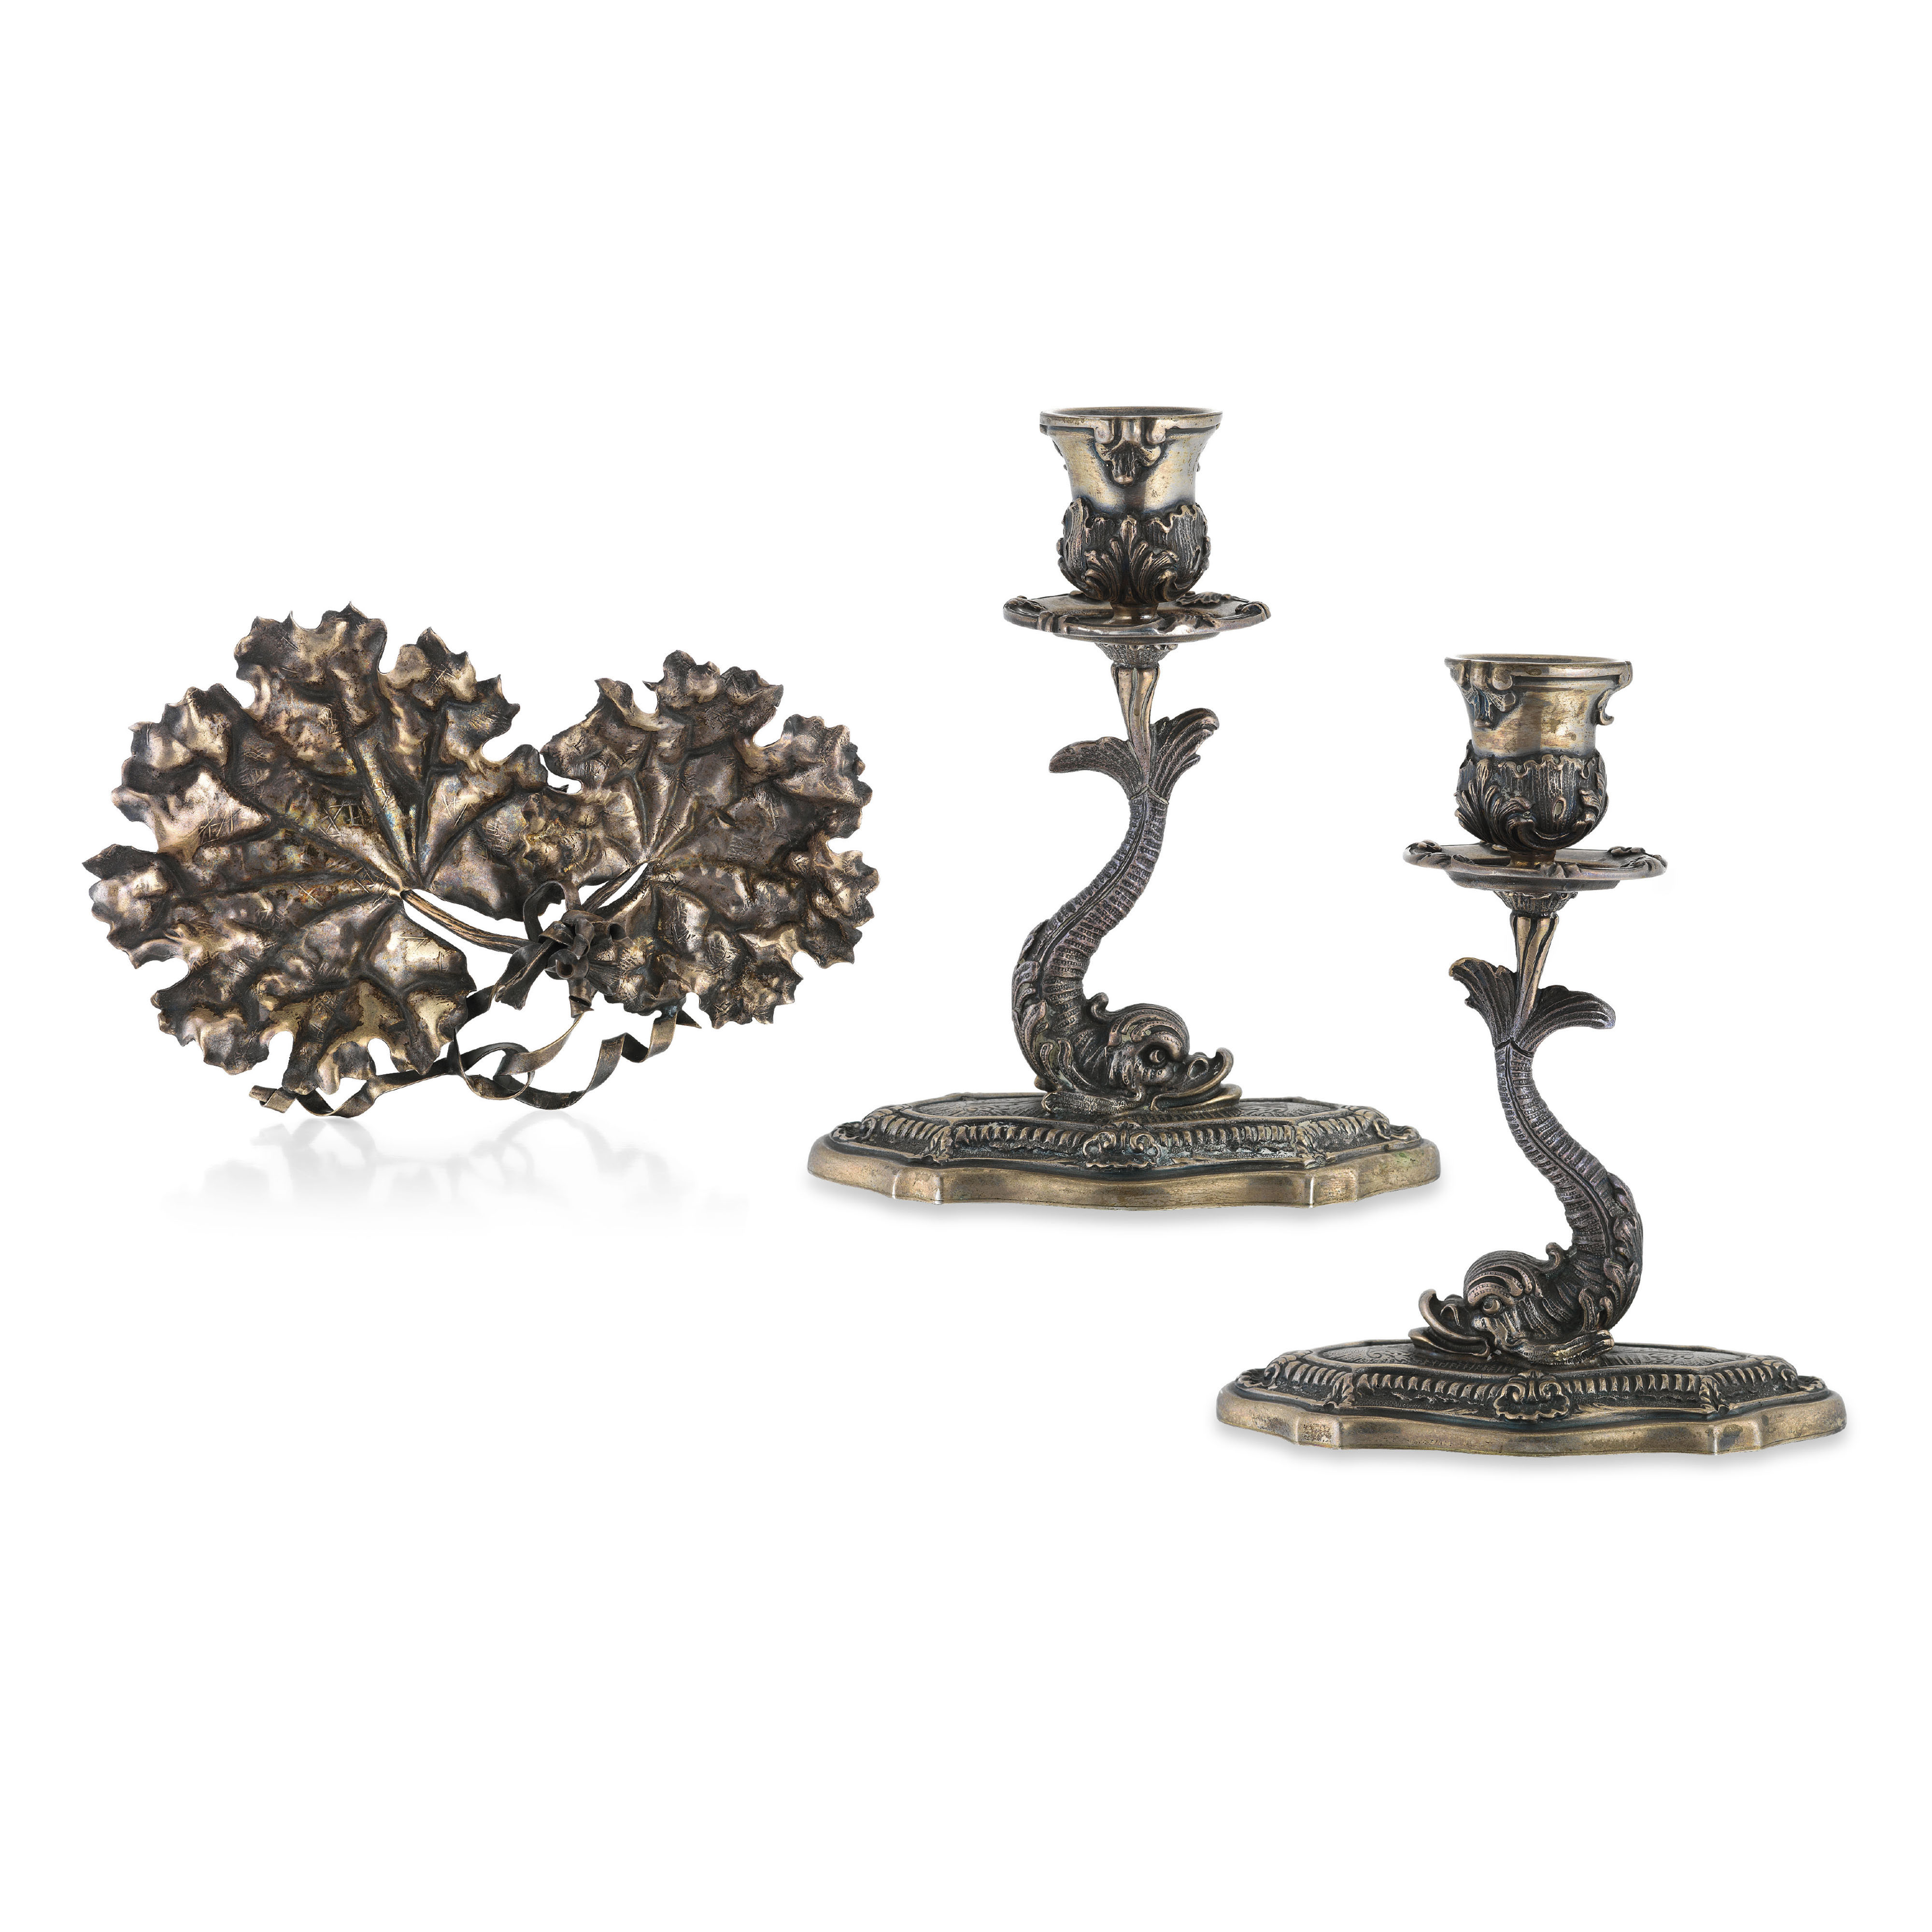 A PAIR OF SILVER CANDLESTICKS